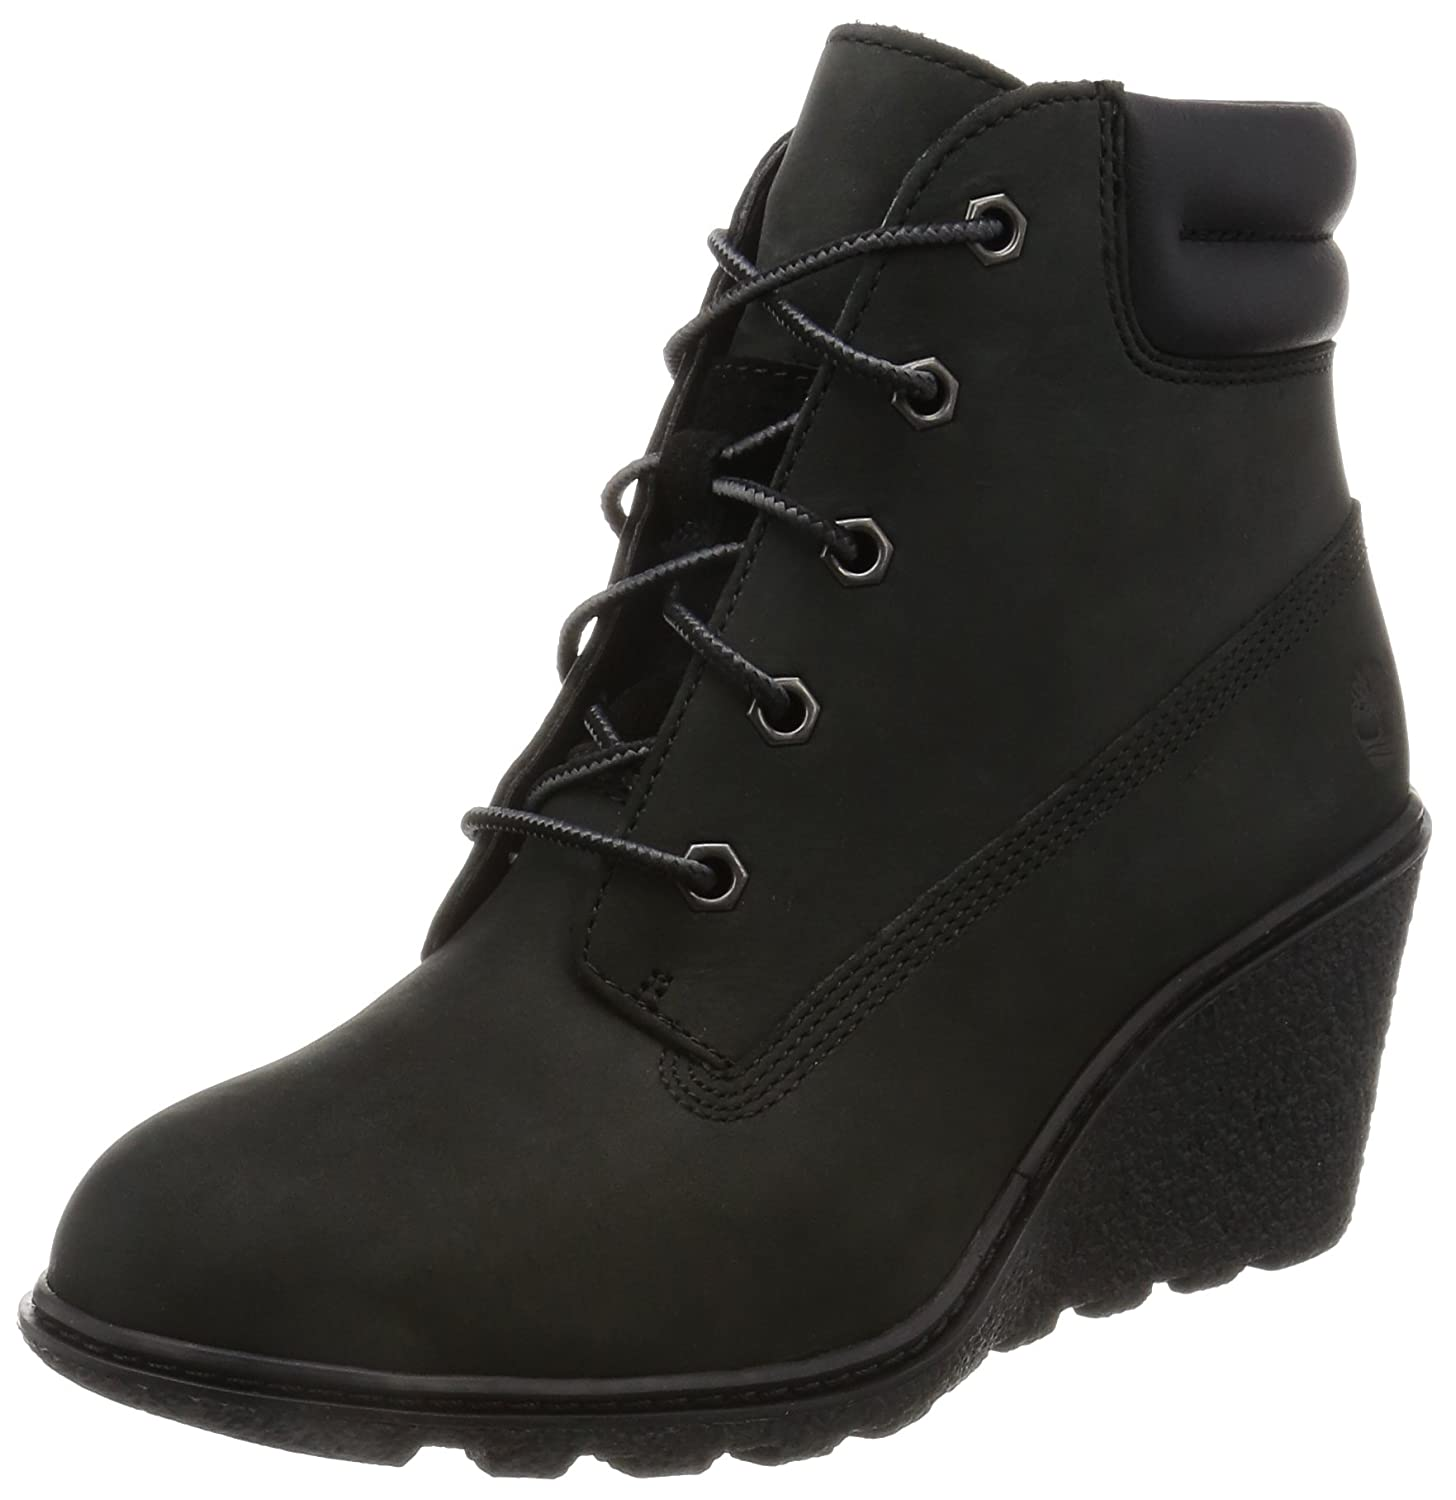 Earthkeepers Amston Delle Donne Timberland Avvio Roll-top